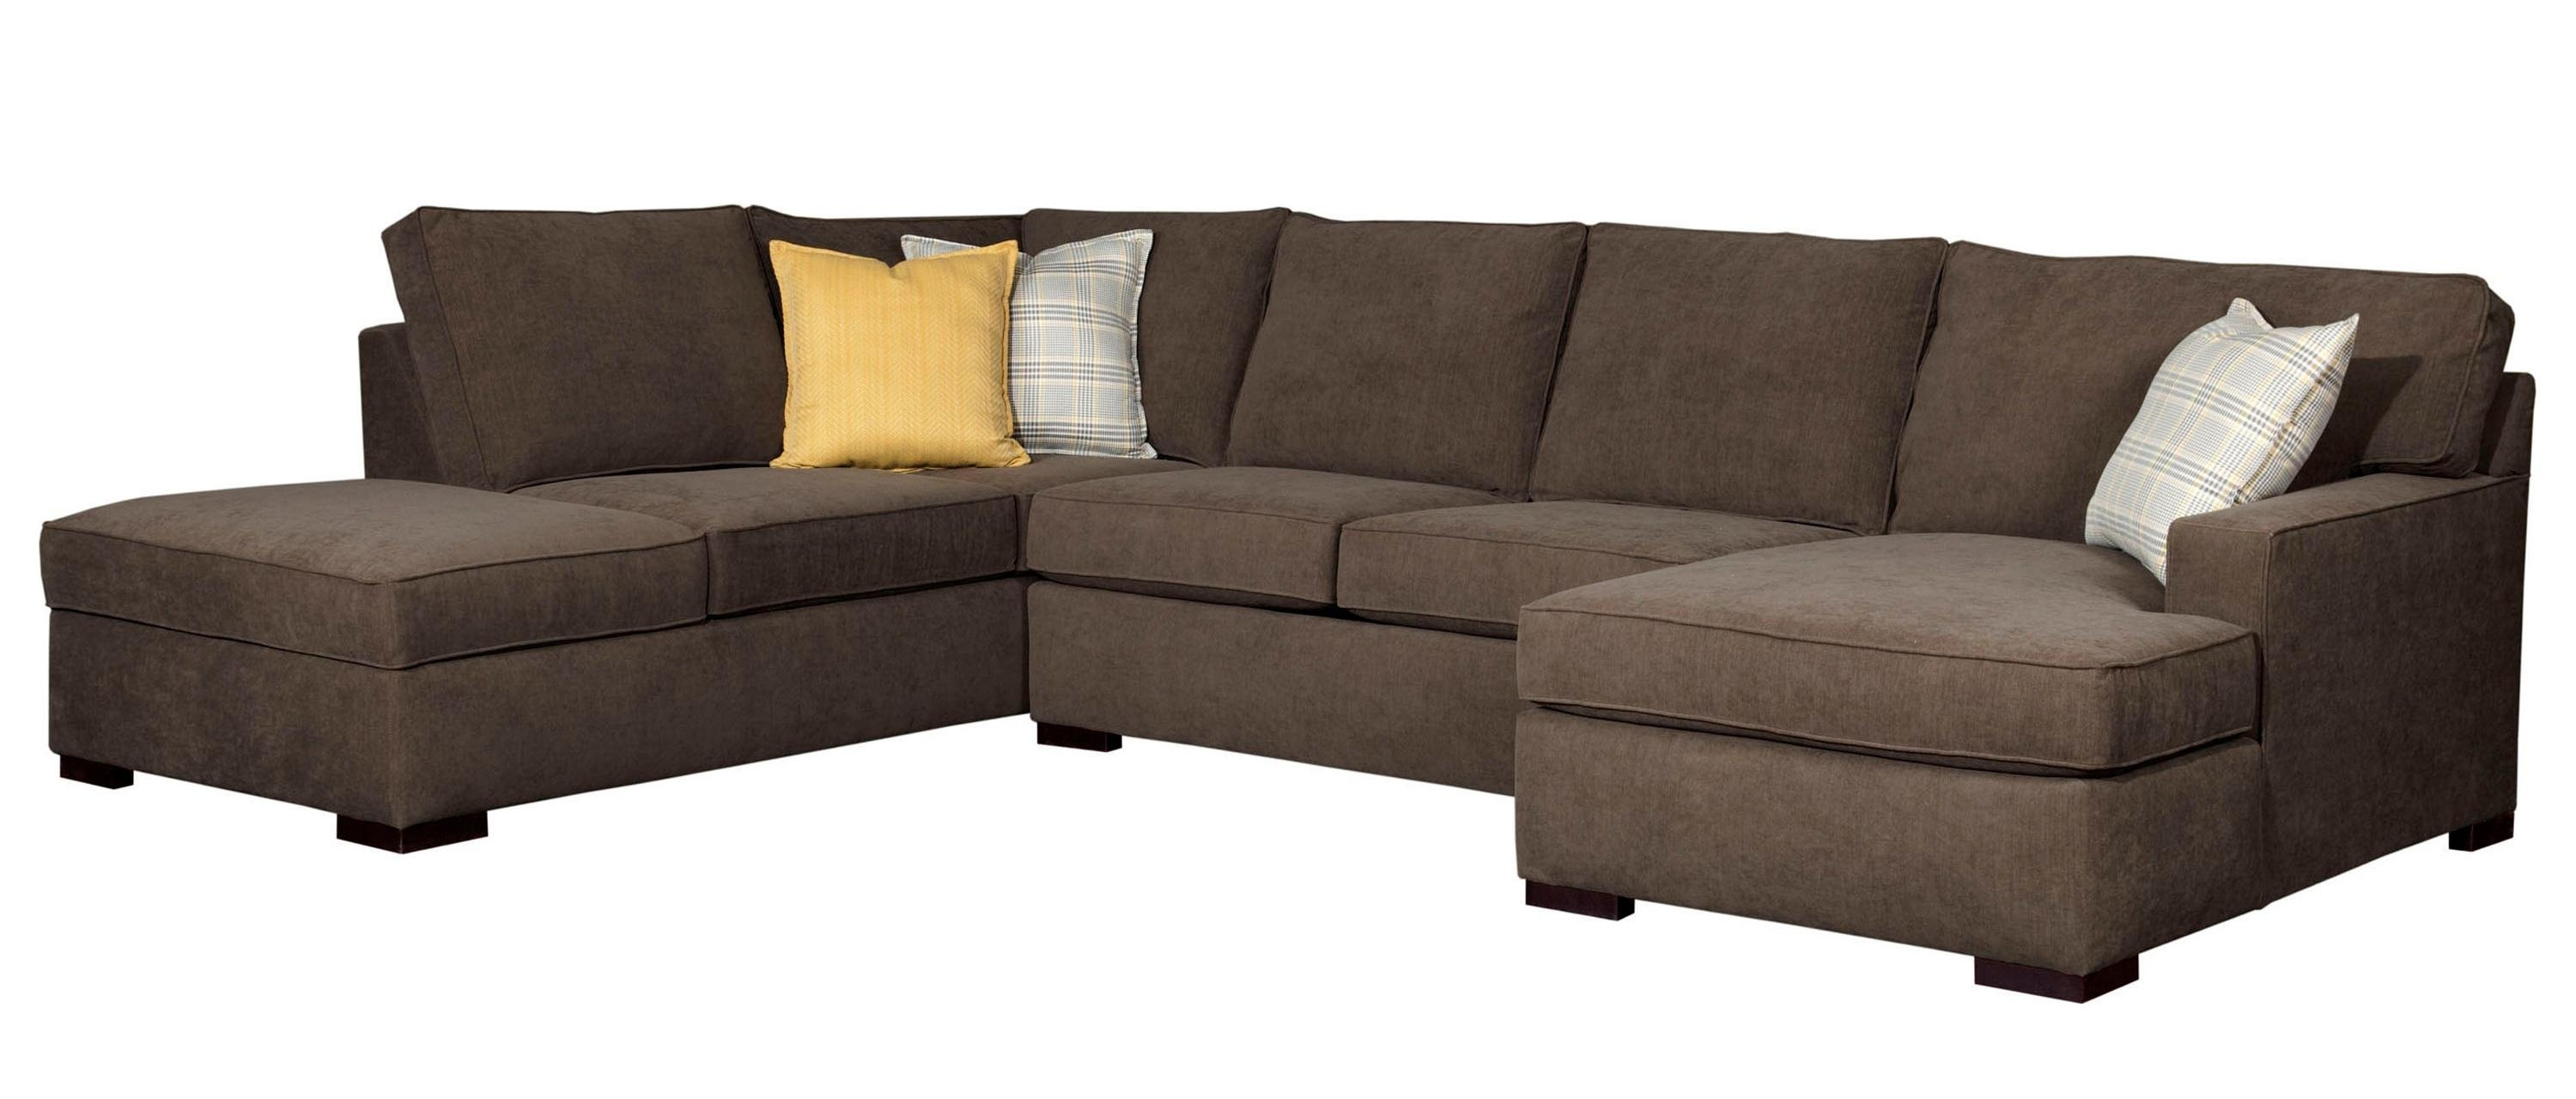 4100 Sectional Sofacorinthian – Wolf Furniture – Sofa Sectional Pertaining To Sam Levitz Sectional Sofas (View 1 of 10)